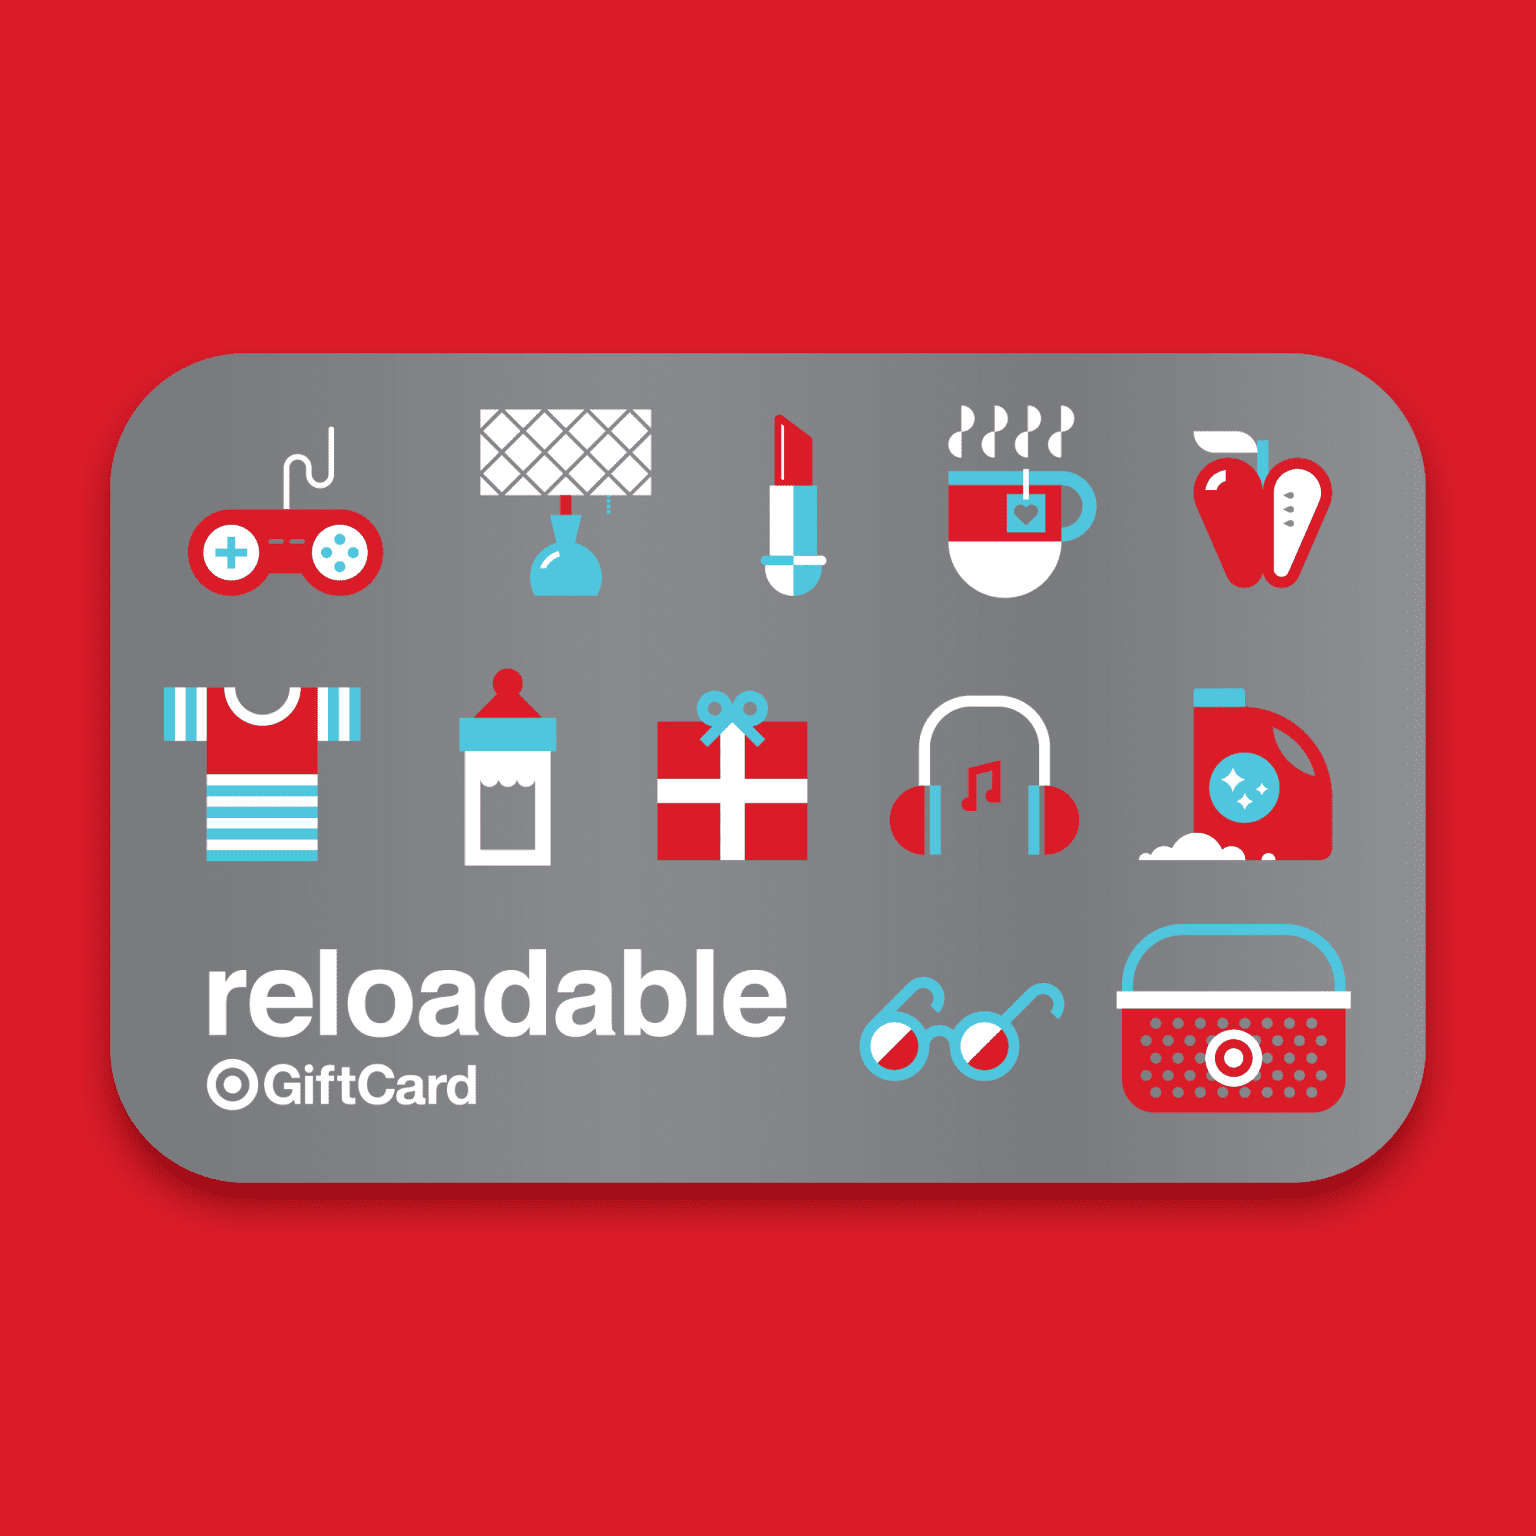 Target Reloadable GiftCard